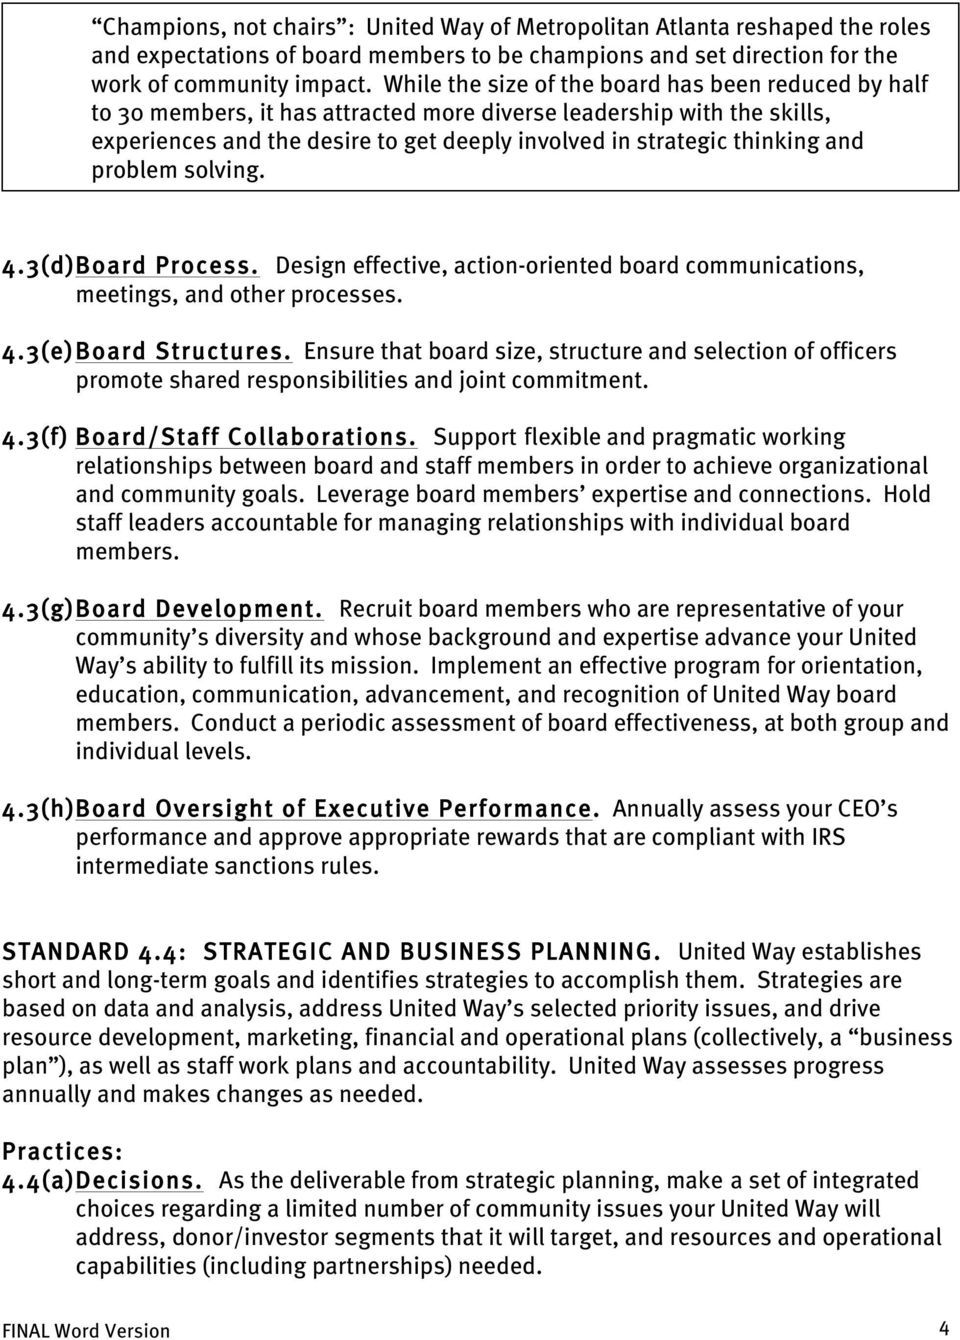 and problem solving. 4.3(d) Board Process. Design effective, action-oriented board communications, meetings, and other processes. 4.3(e) Board Structures.